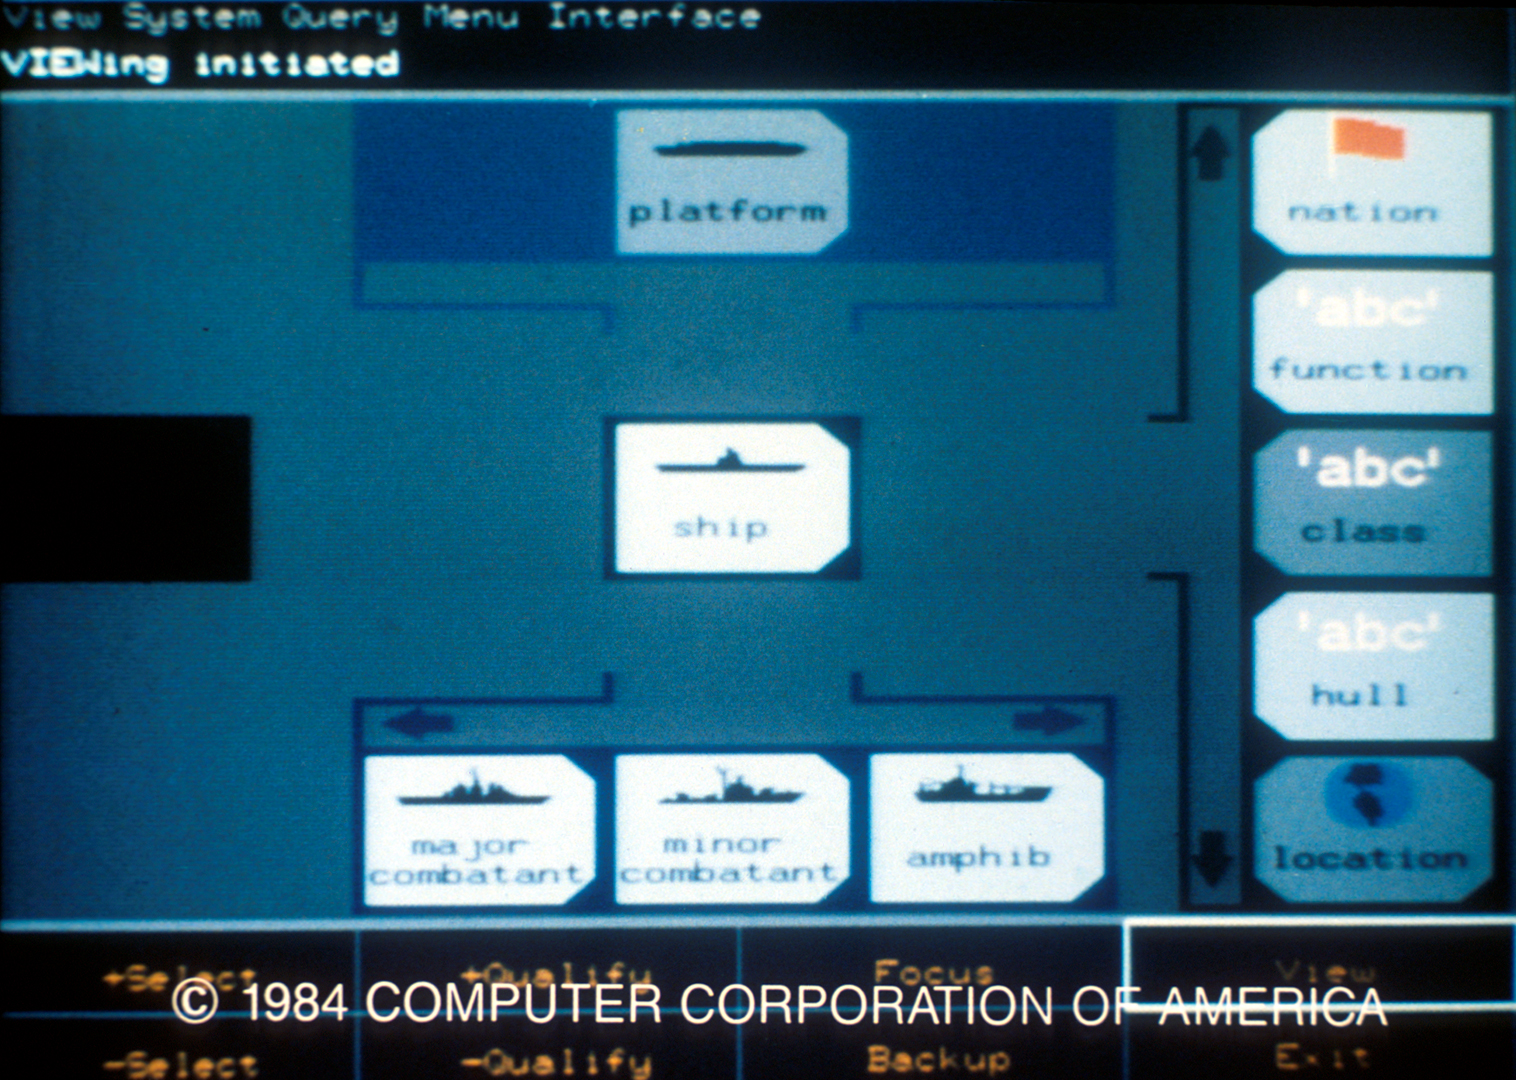 ©, Computer Corporation of America, View System